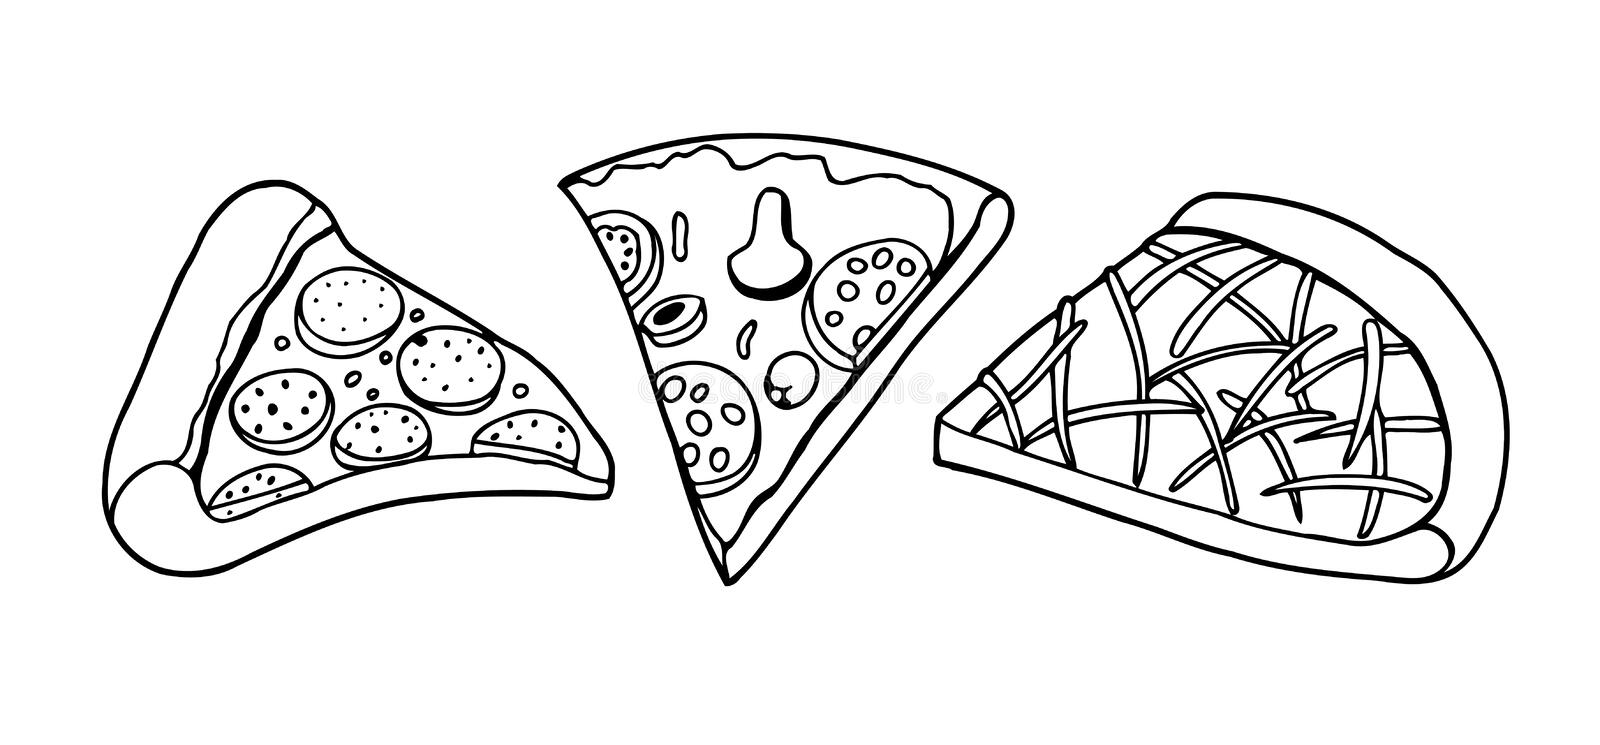 De vectortekening van de Pizzaplak stock illustratie